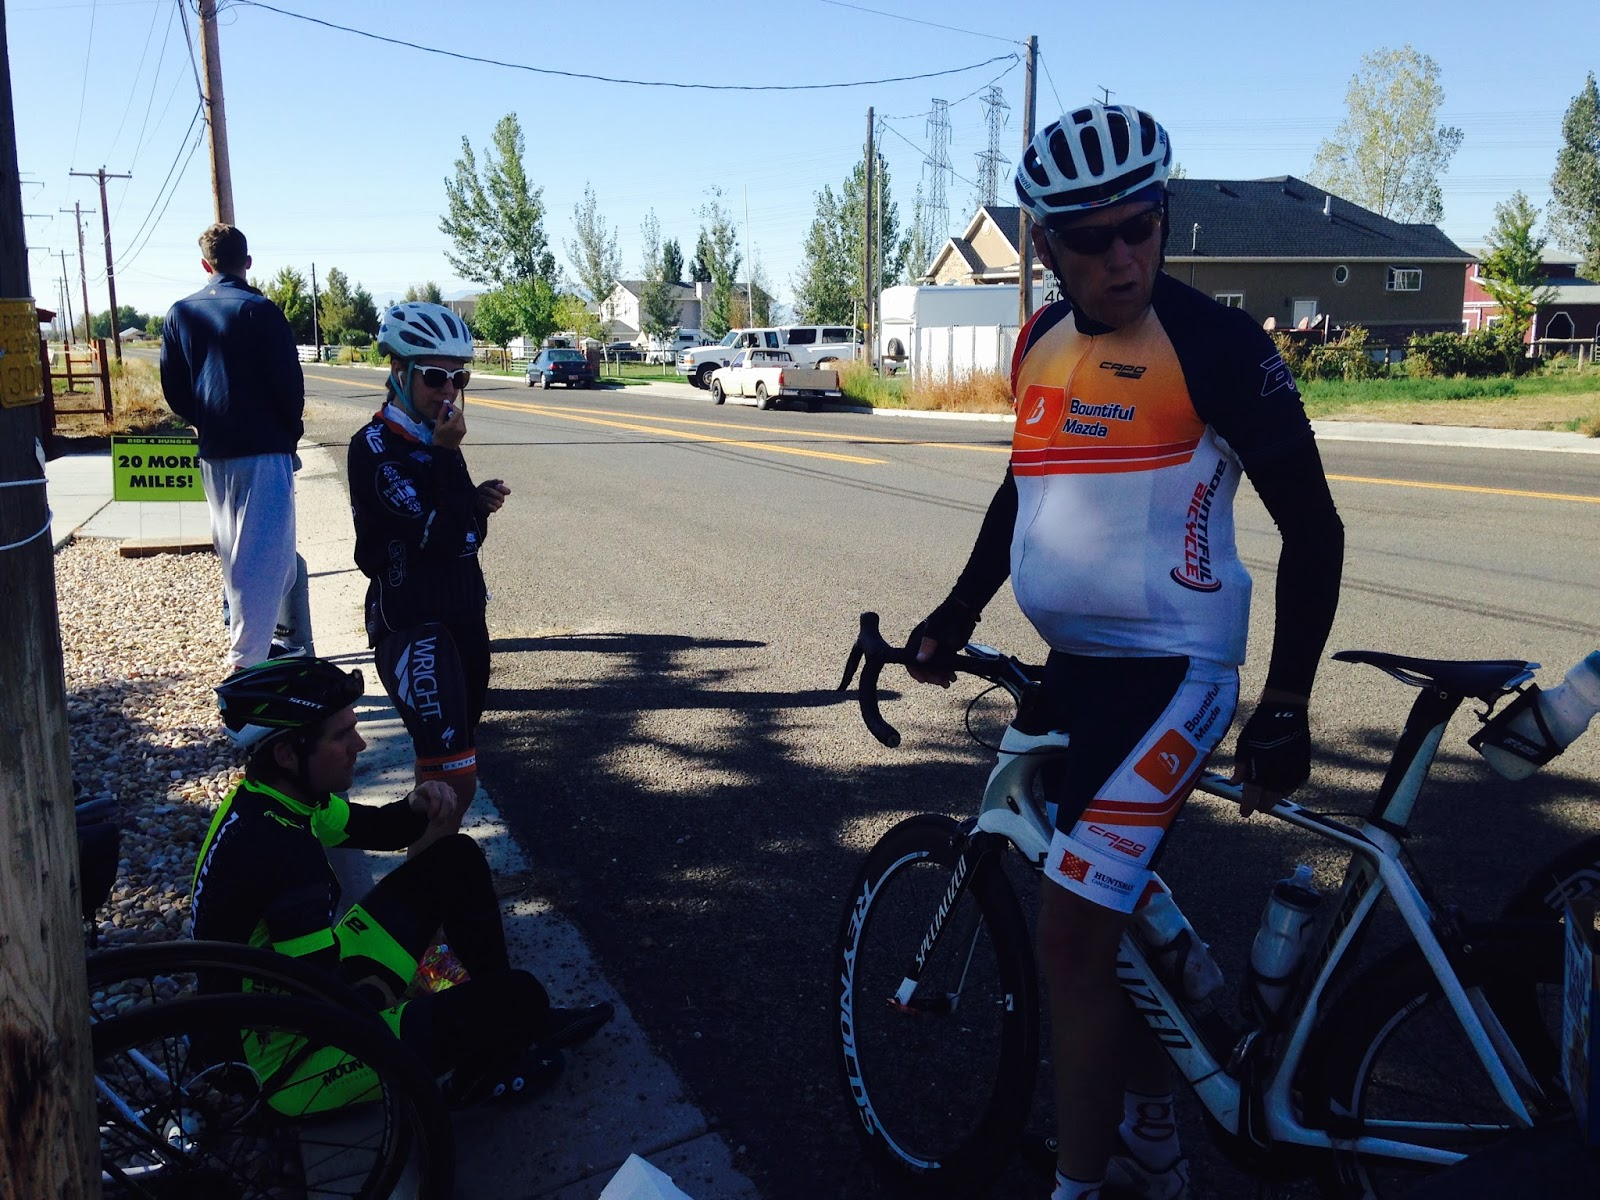 mountain orthopaedics ride for hunger